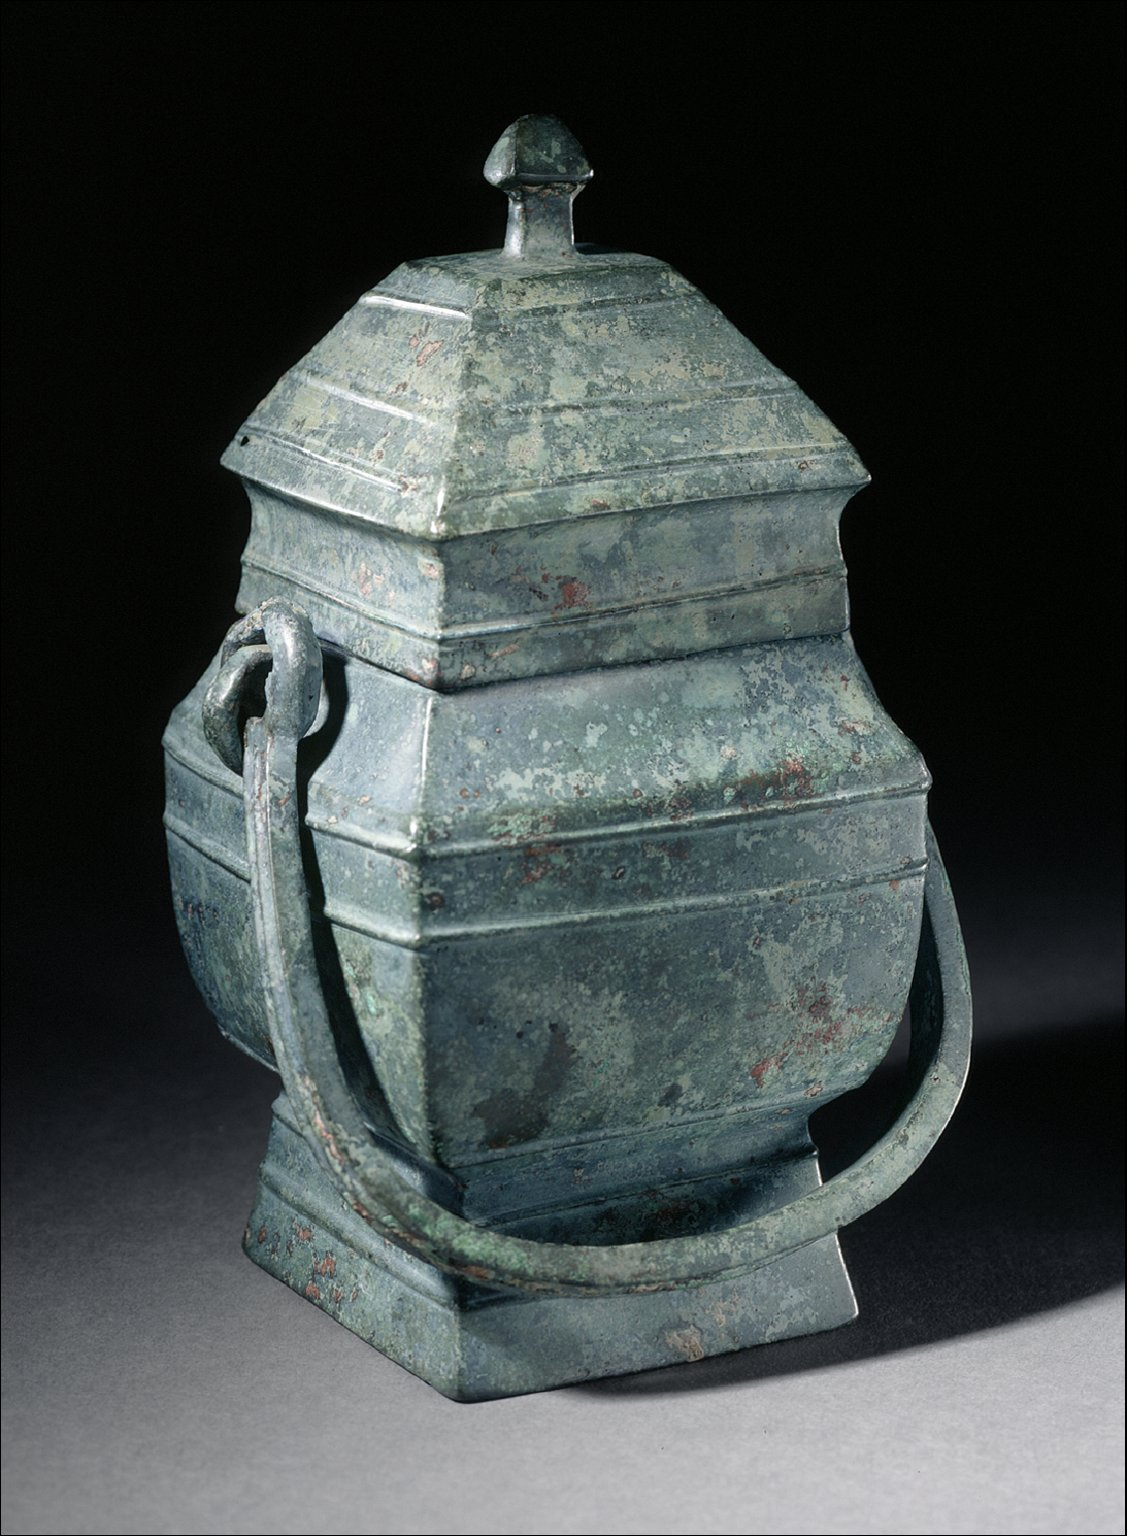 Lidded Square Ritual Wine Bucket (Fangyou) with Horizontal Ribs